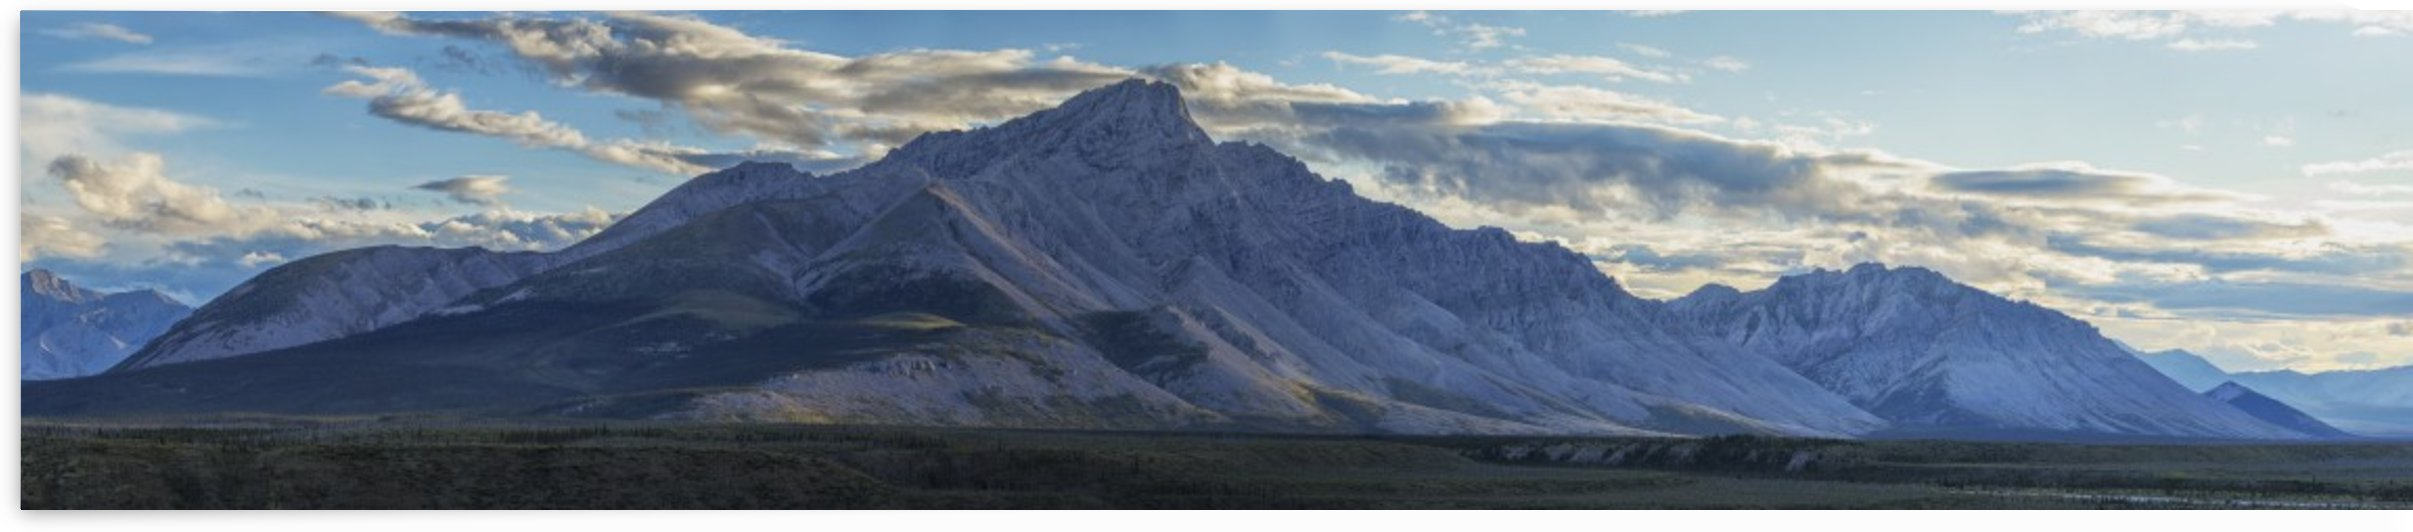 Panoramic image of Royal Mountain along the Wind River, Peel Watershed; Yukon, Canada by PacificStock